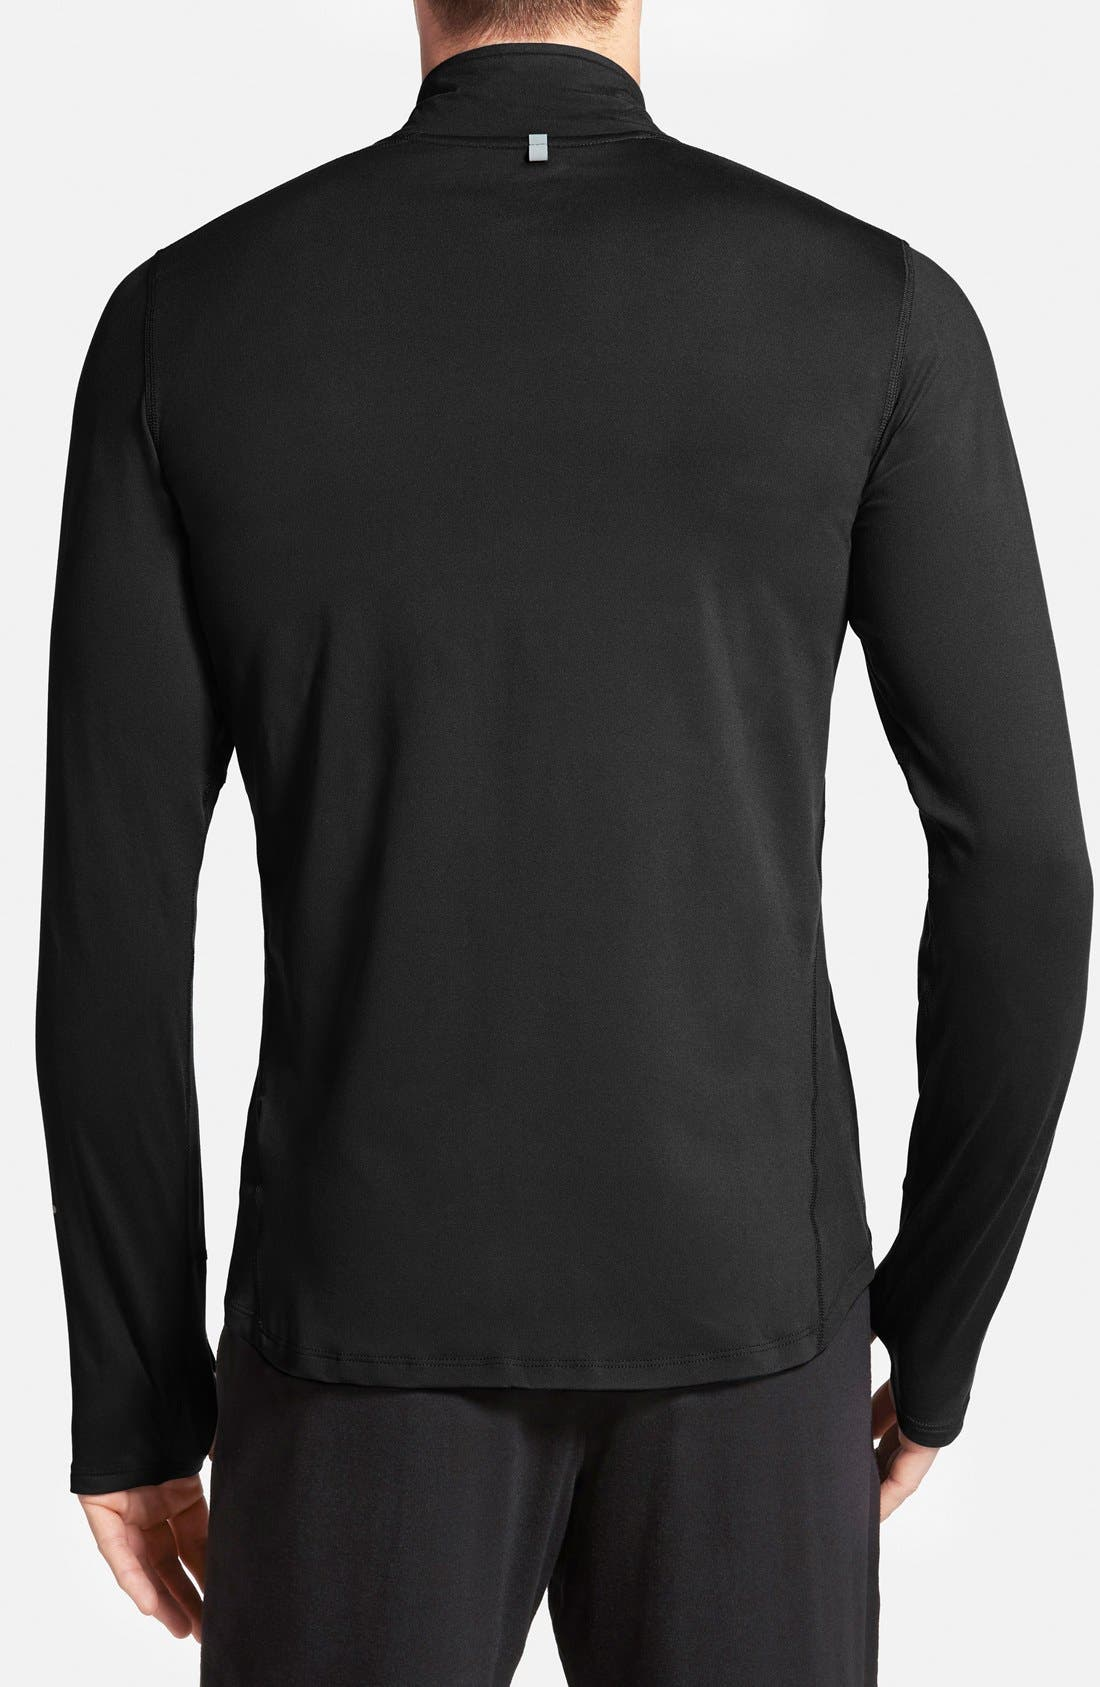 Alternate Image 2  - Nike 'Element' Dri-FIT Half Zip Running Top